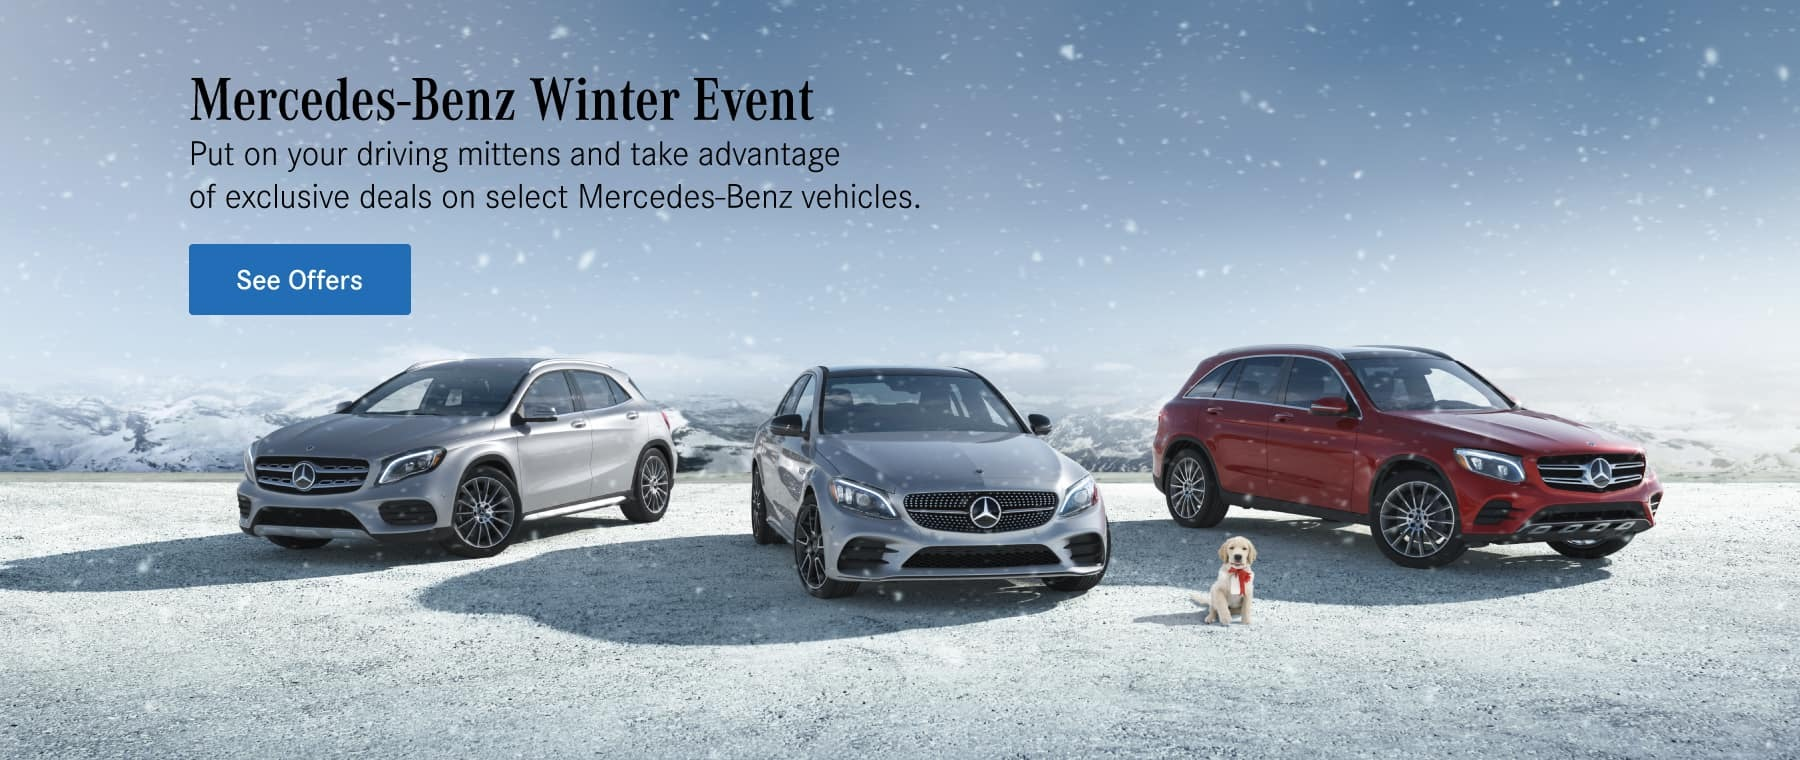 MB Winter Sales Event2